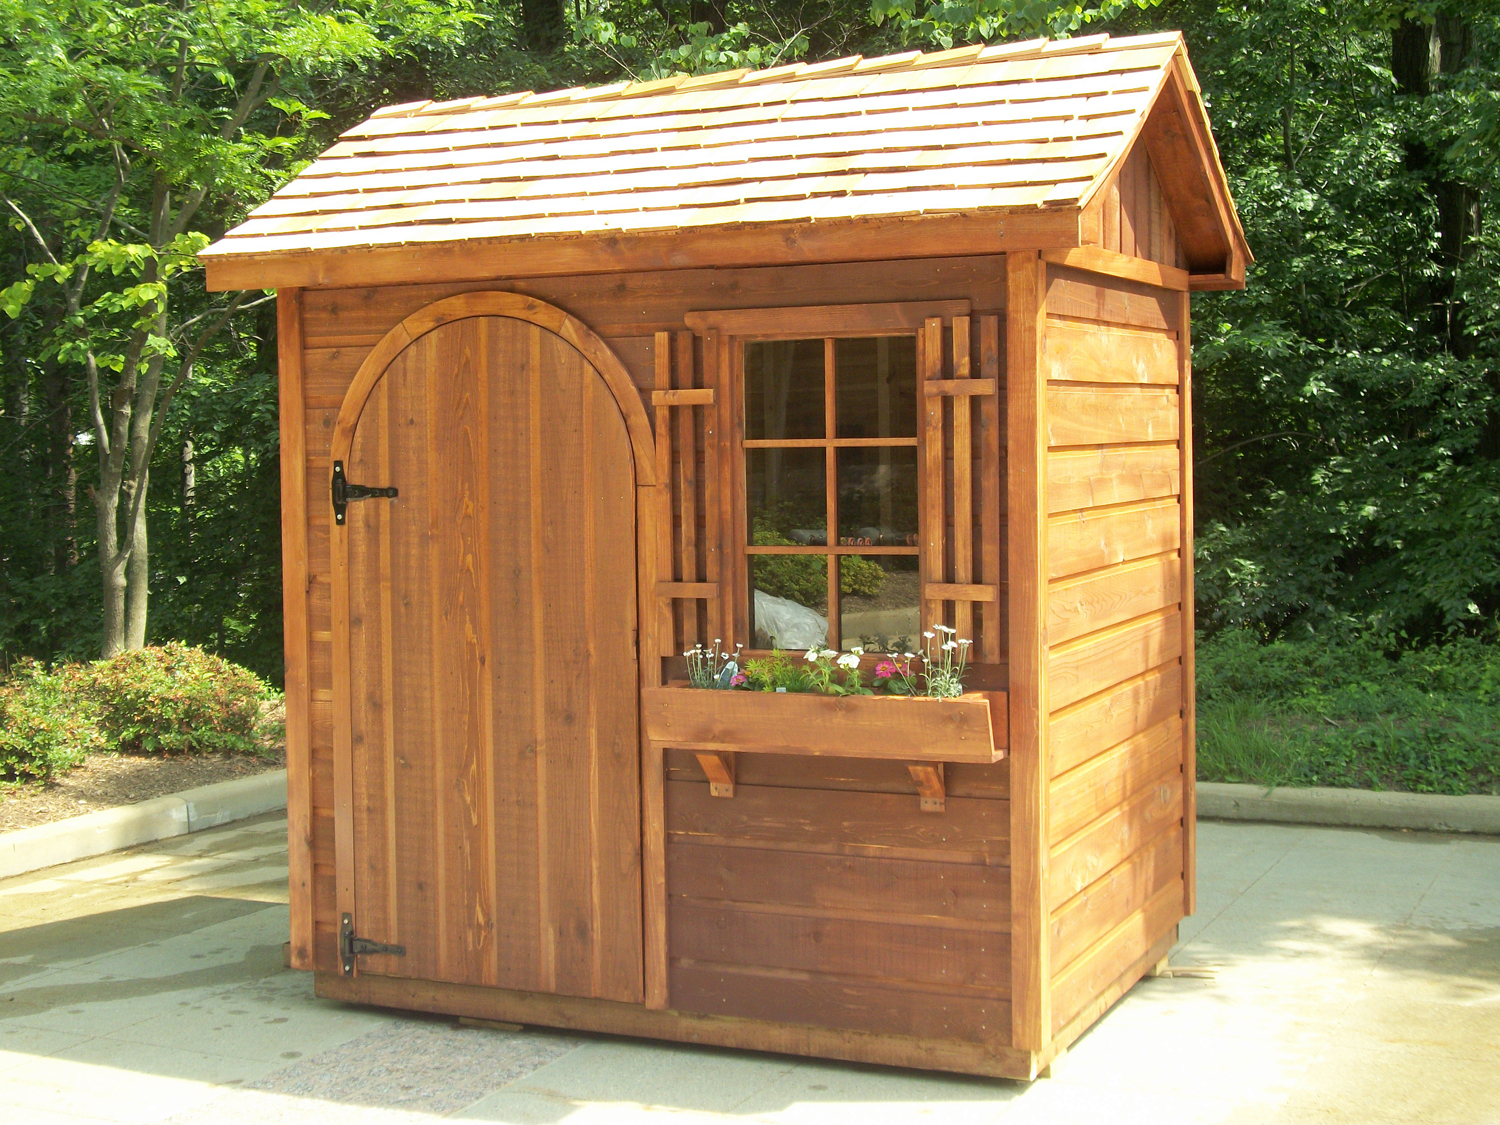 Garden shed design and plans shed blueprints for Shed design plans